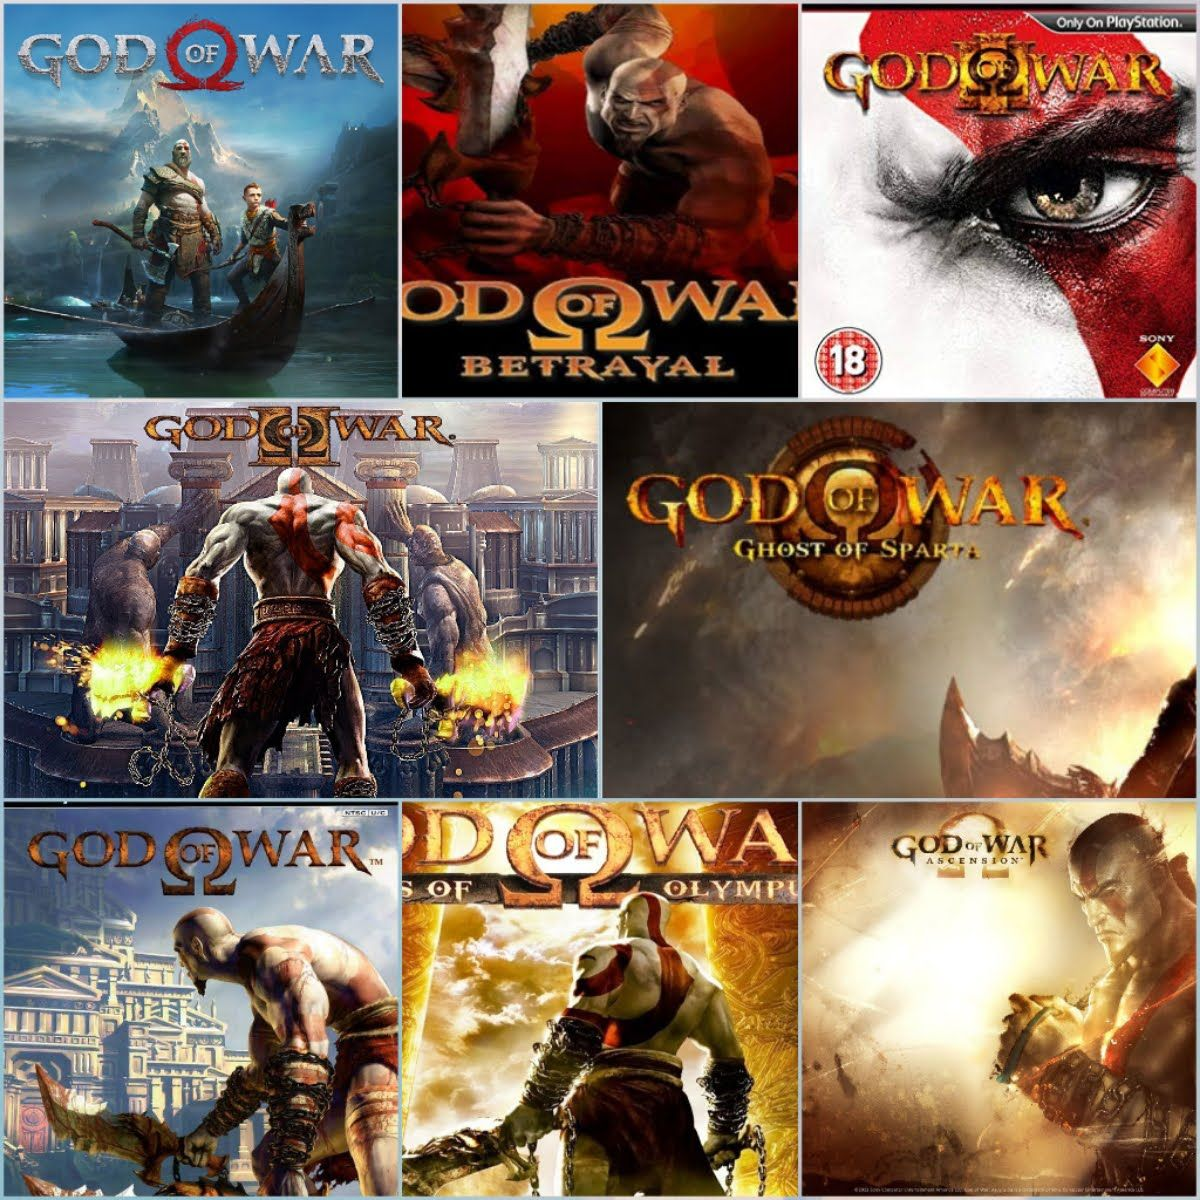 I finished the whole saga of God of war!, Ascension, Chains of